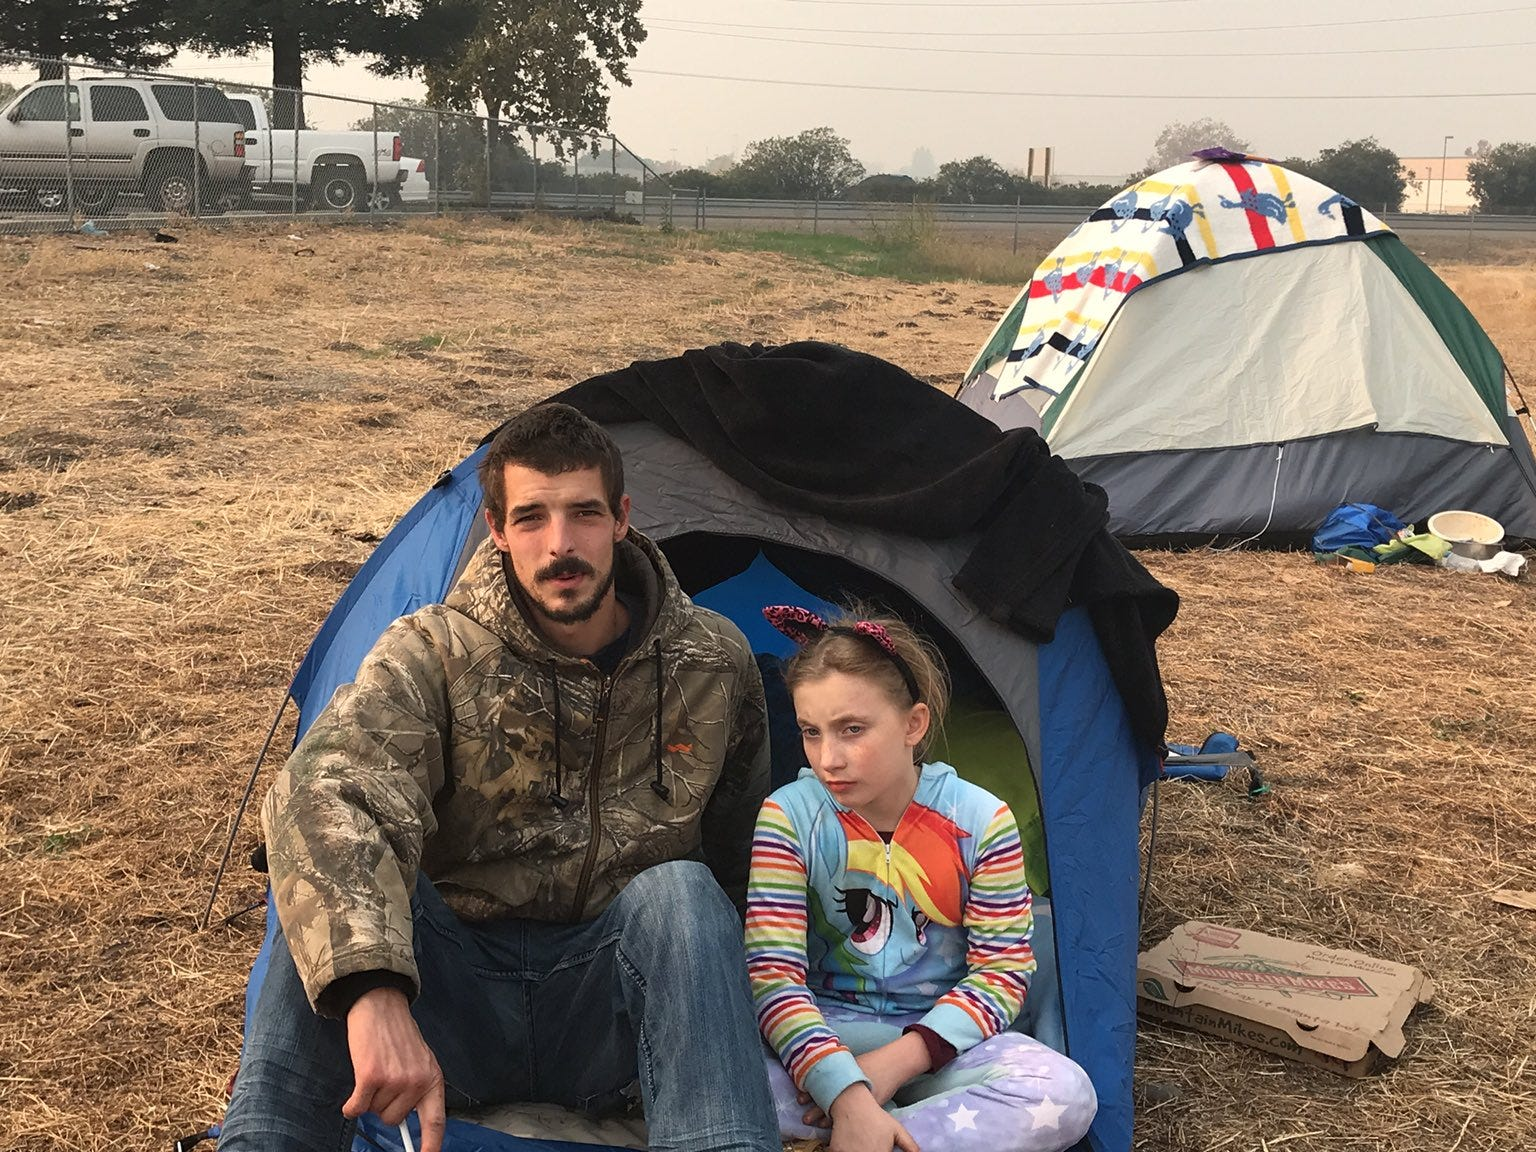 """The Belcher family lost their home in Paradise in the Camp Fire. They've been living in Ryan's boss' truck and a small tent. They have three kids ages 4 to 10. Zoeylee, 10, said kids are """"terrified."""" President Trump came to California on Saturday, Nov. 17, 2018 to see the devastation first-hand."""